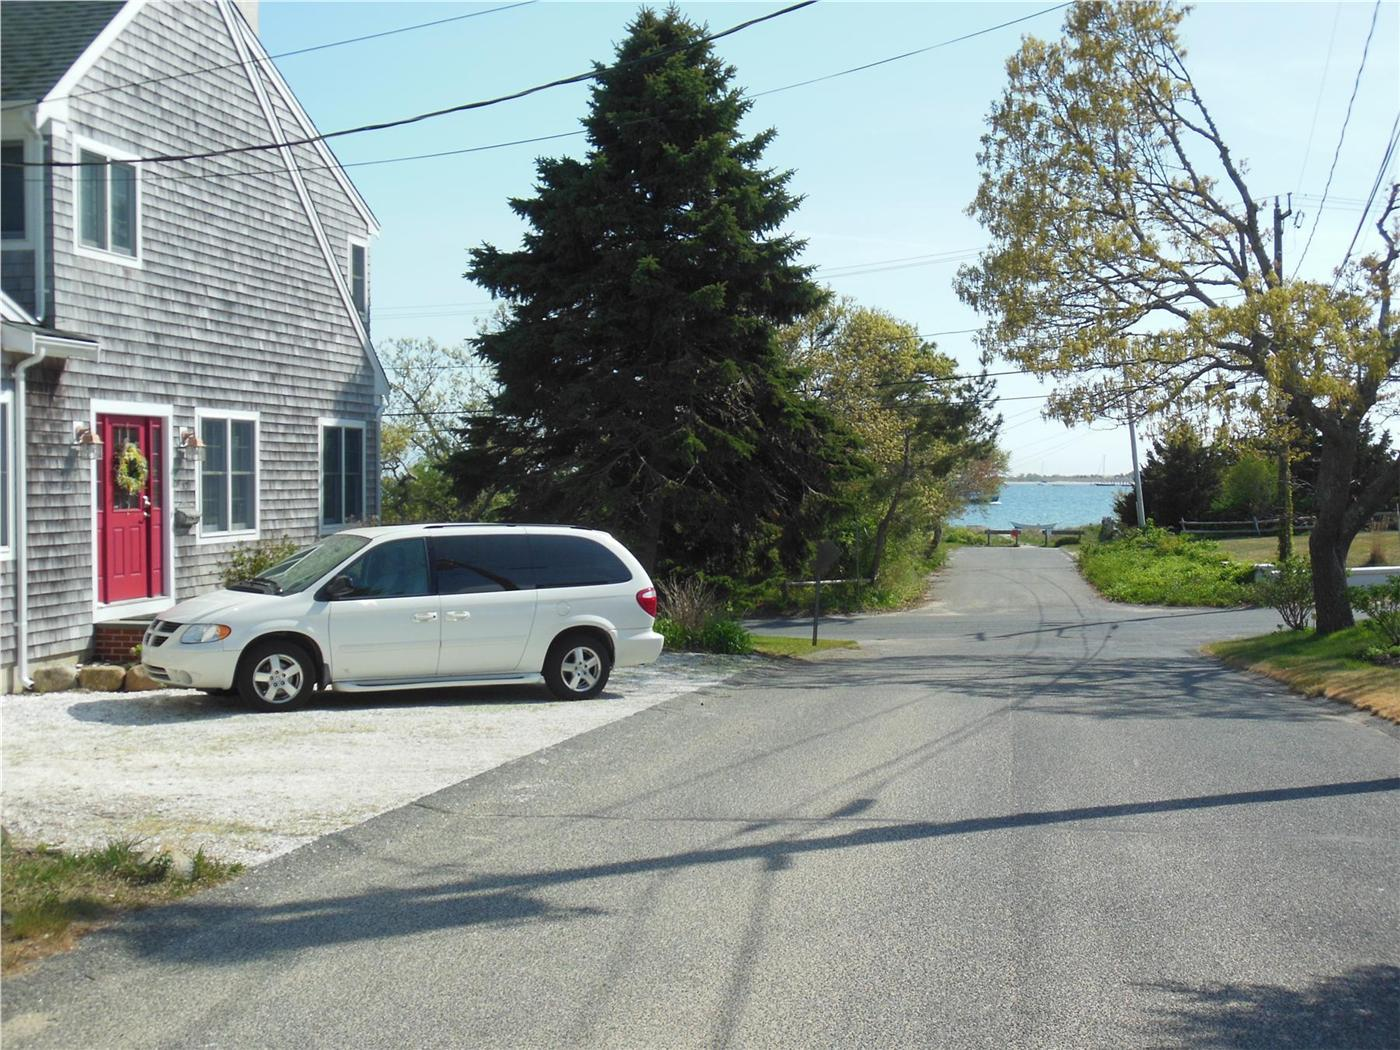 Hyannis Vacation Rental home in Cape Cod MA, Lewis Bay